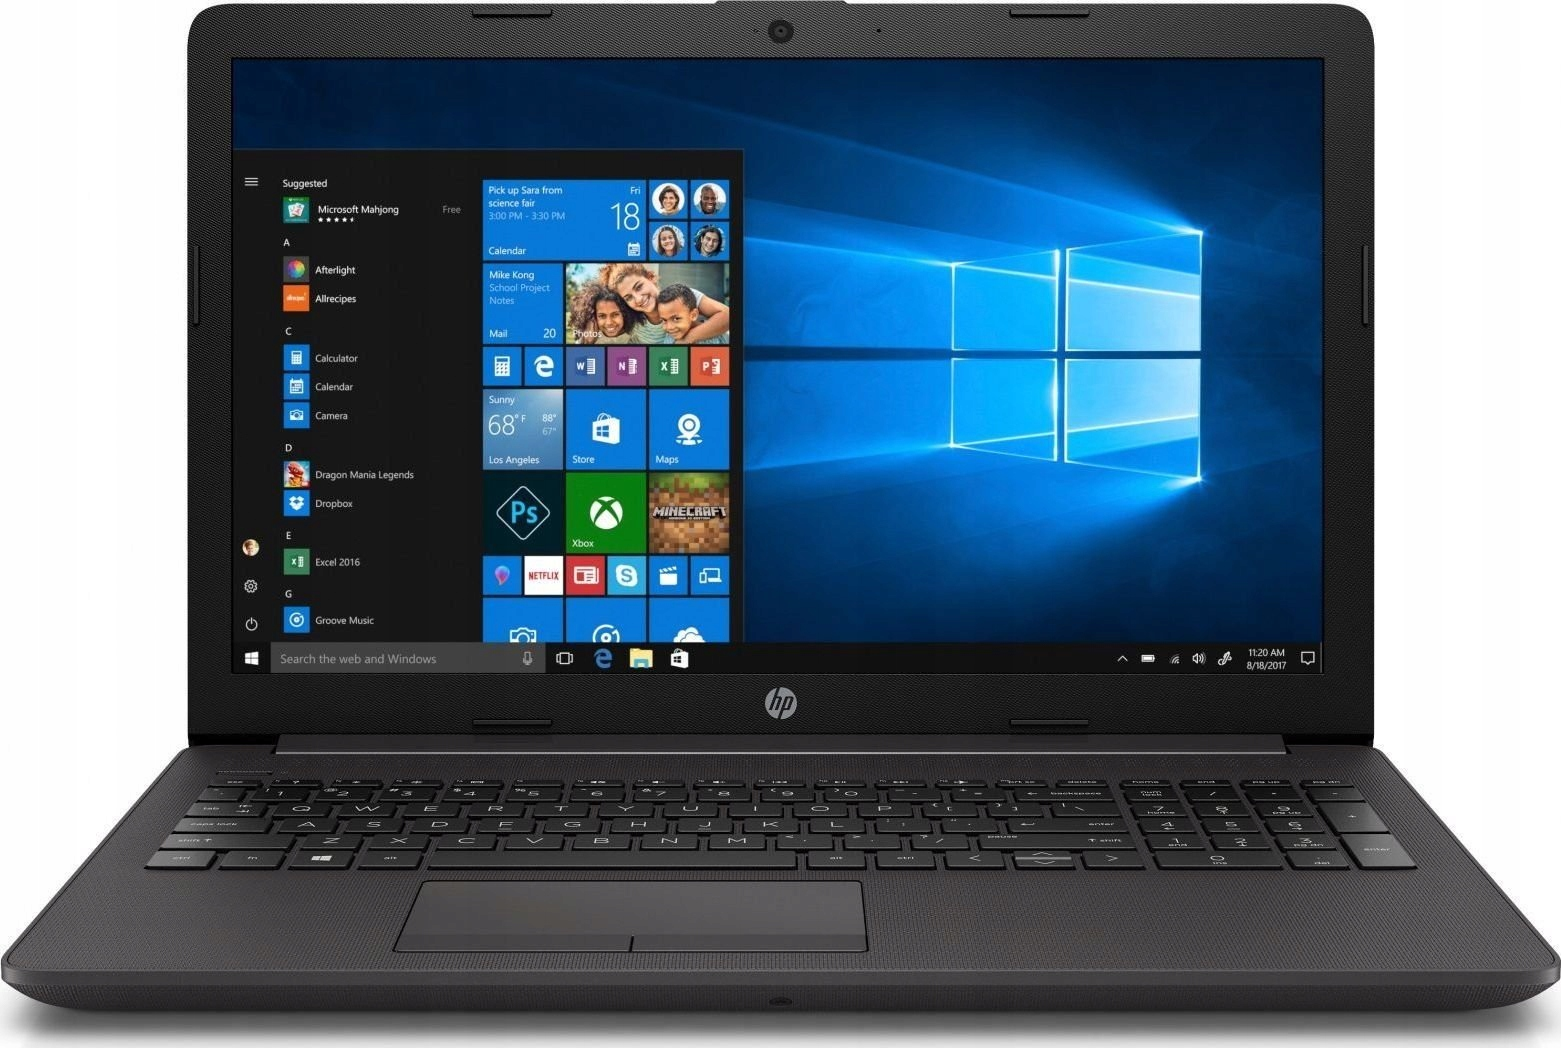 Komputer Laptop Hp Ryzen 3500U Ssd 256GB 32GB DDR4